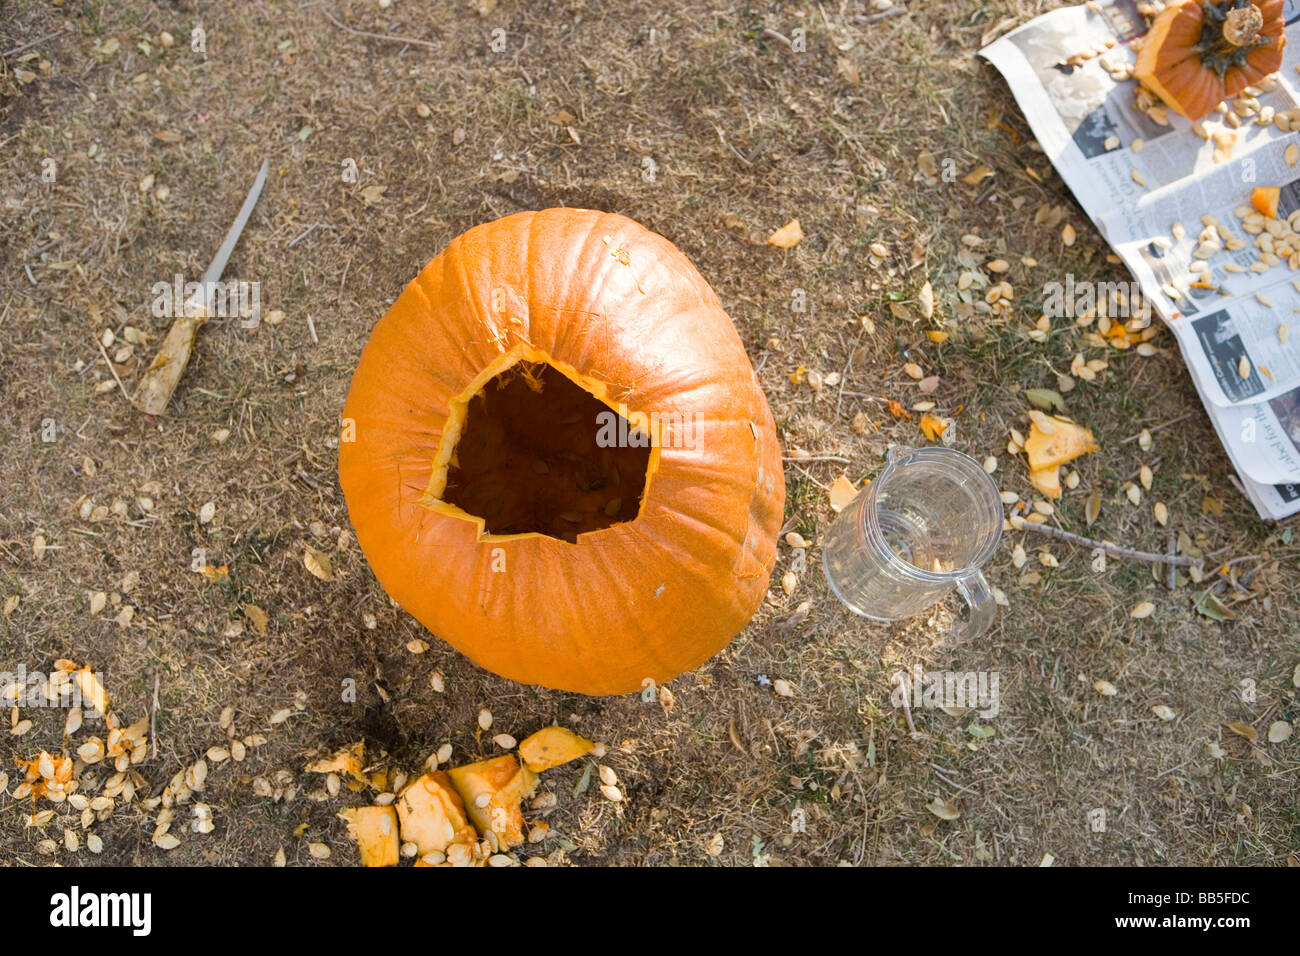 pumpkin with top removed, first step to creating a Jackolantern - Stock Image